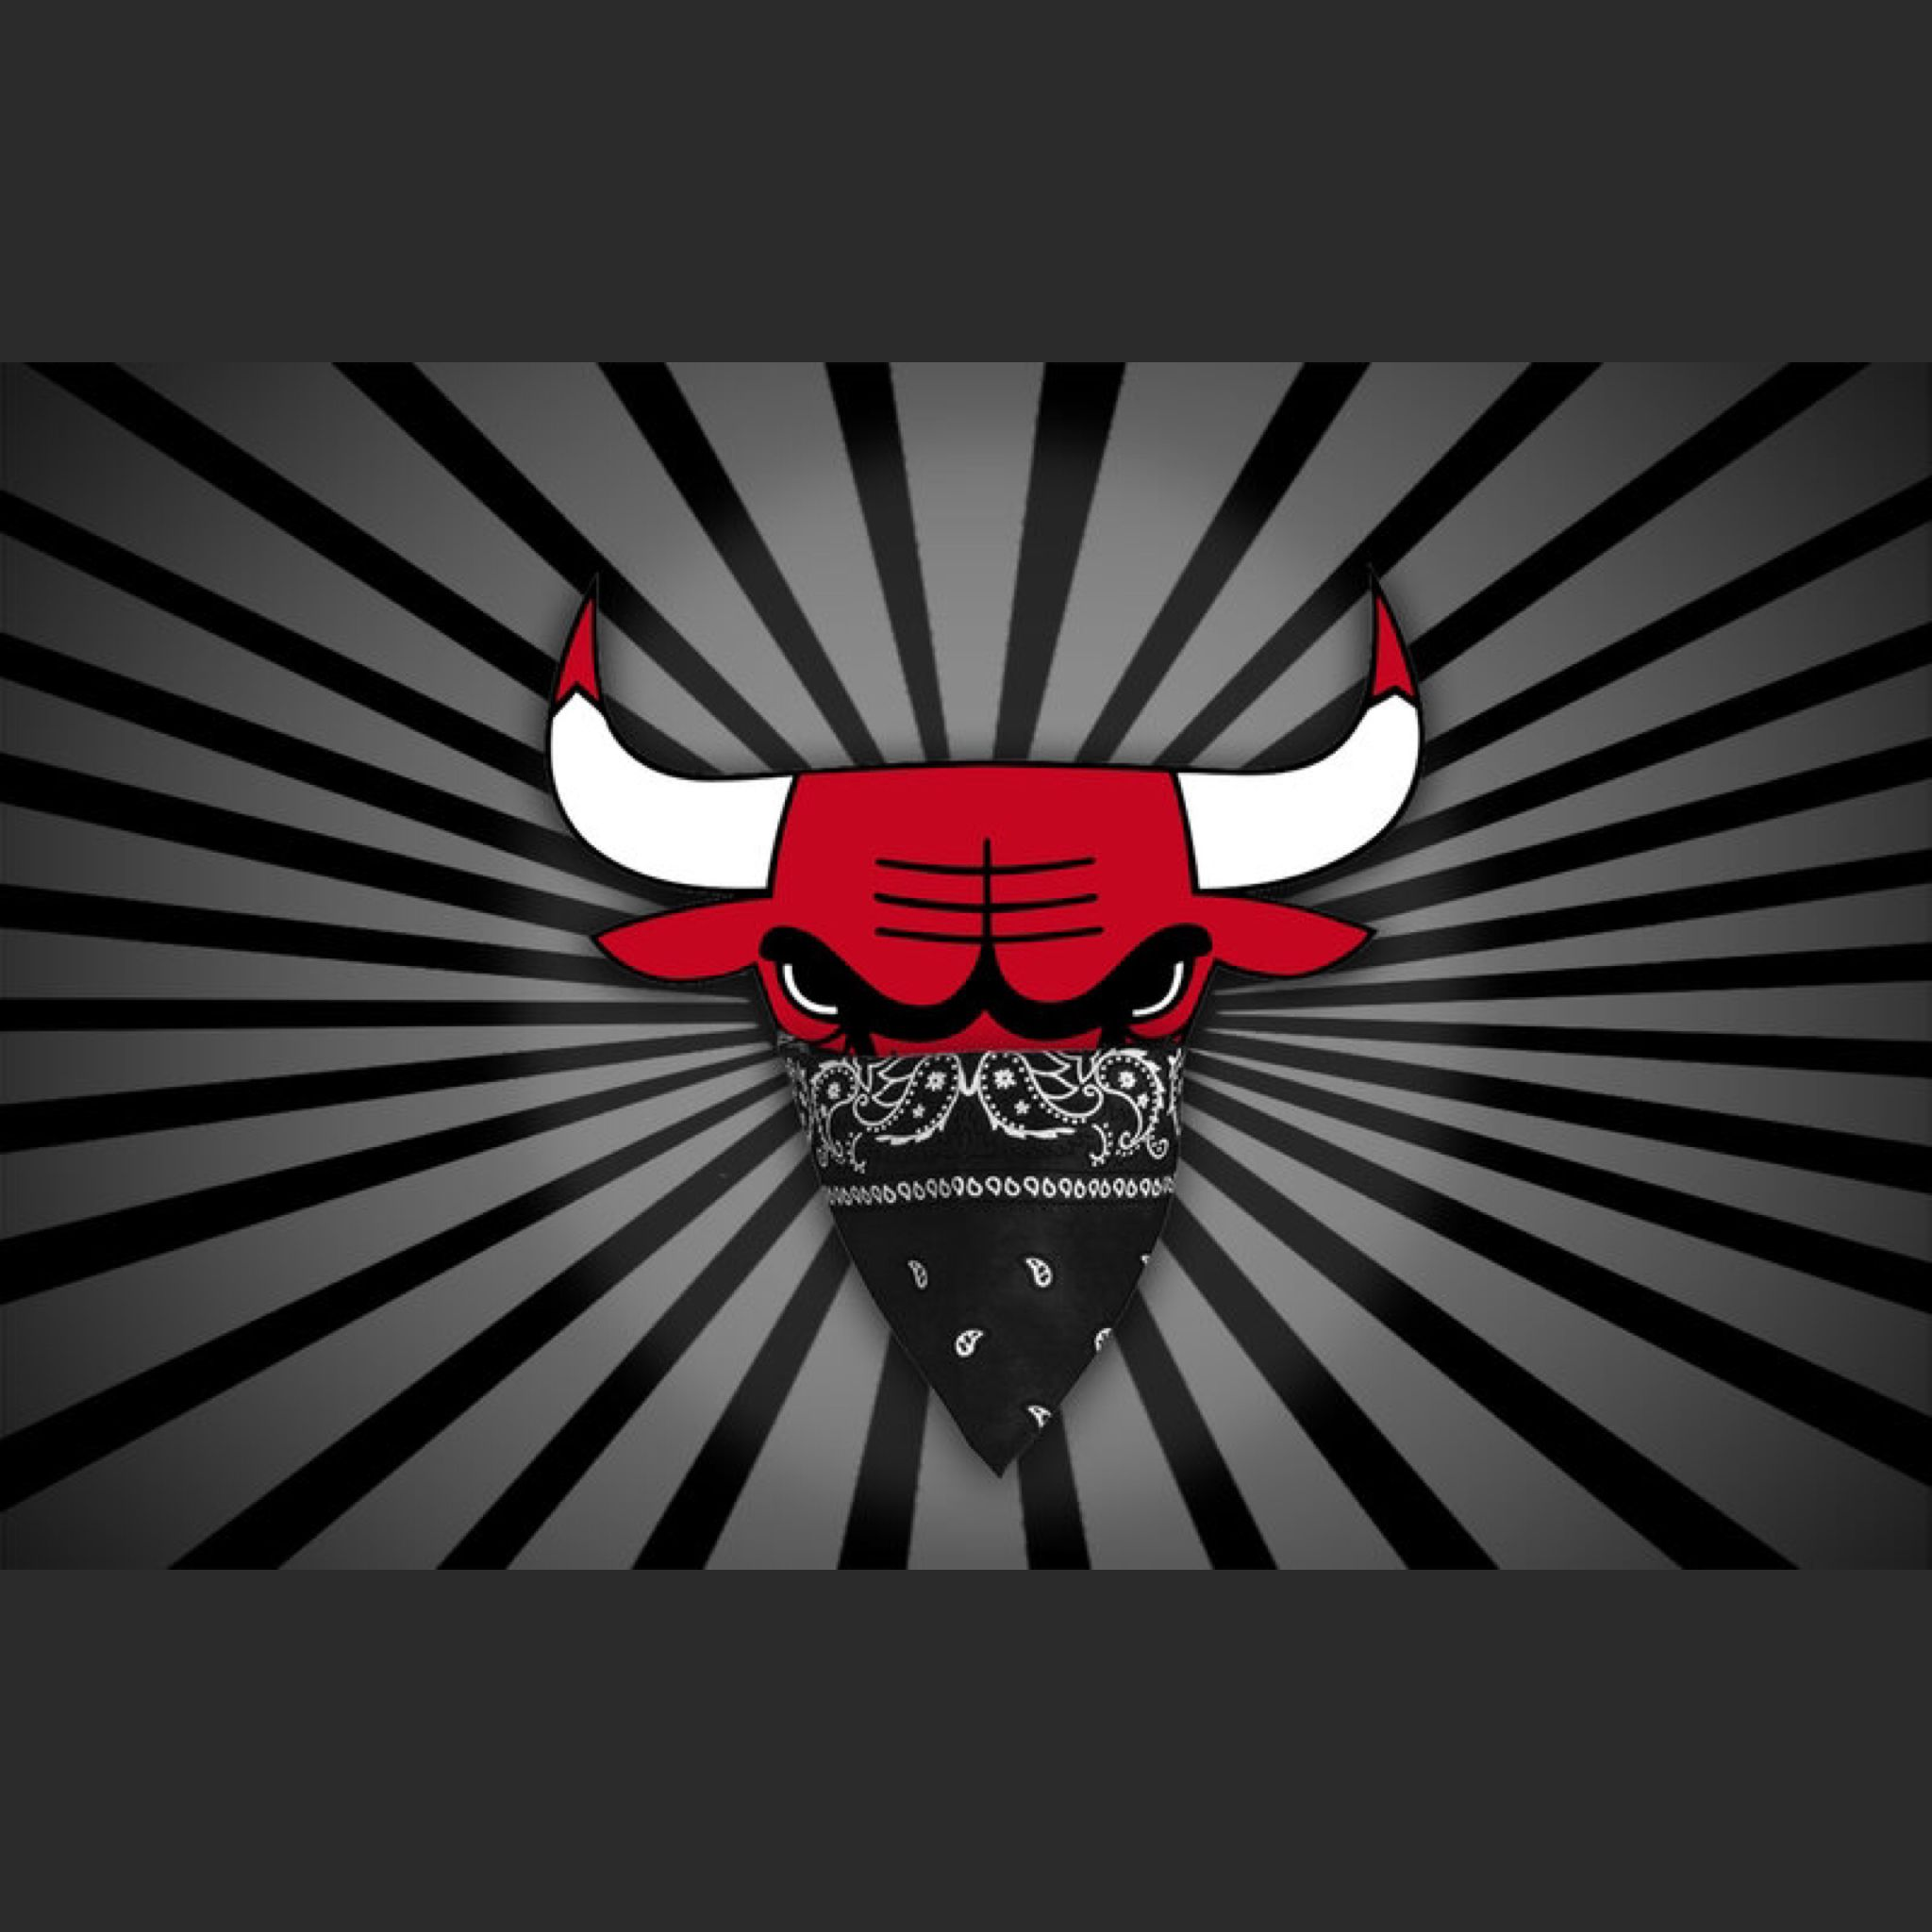 Pin By Nick On I Love My City Chicago Bulls Tattoo Chicago Bulls Wallpaper Logo Chicago Bulls